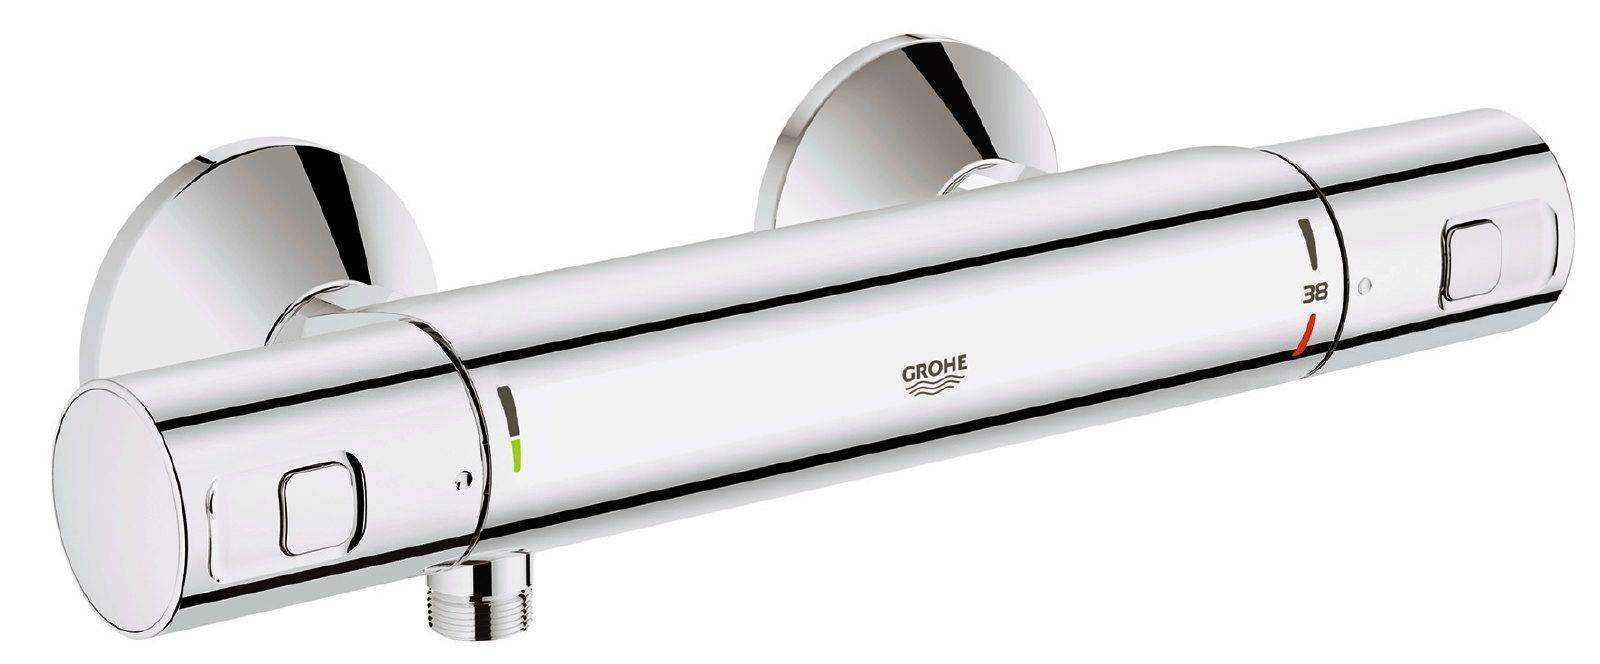 Dusche Grohe Grohe thermostat Precision Start Dusche